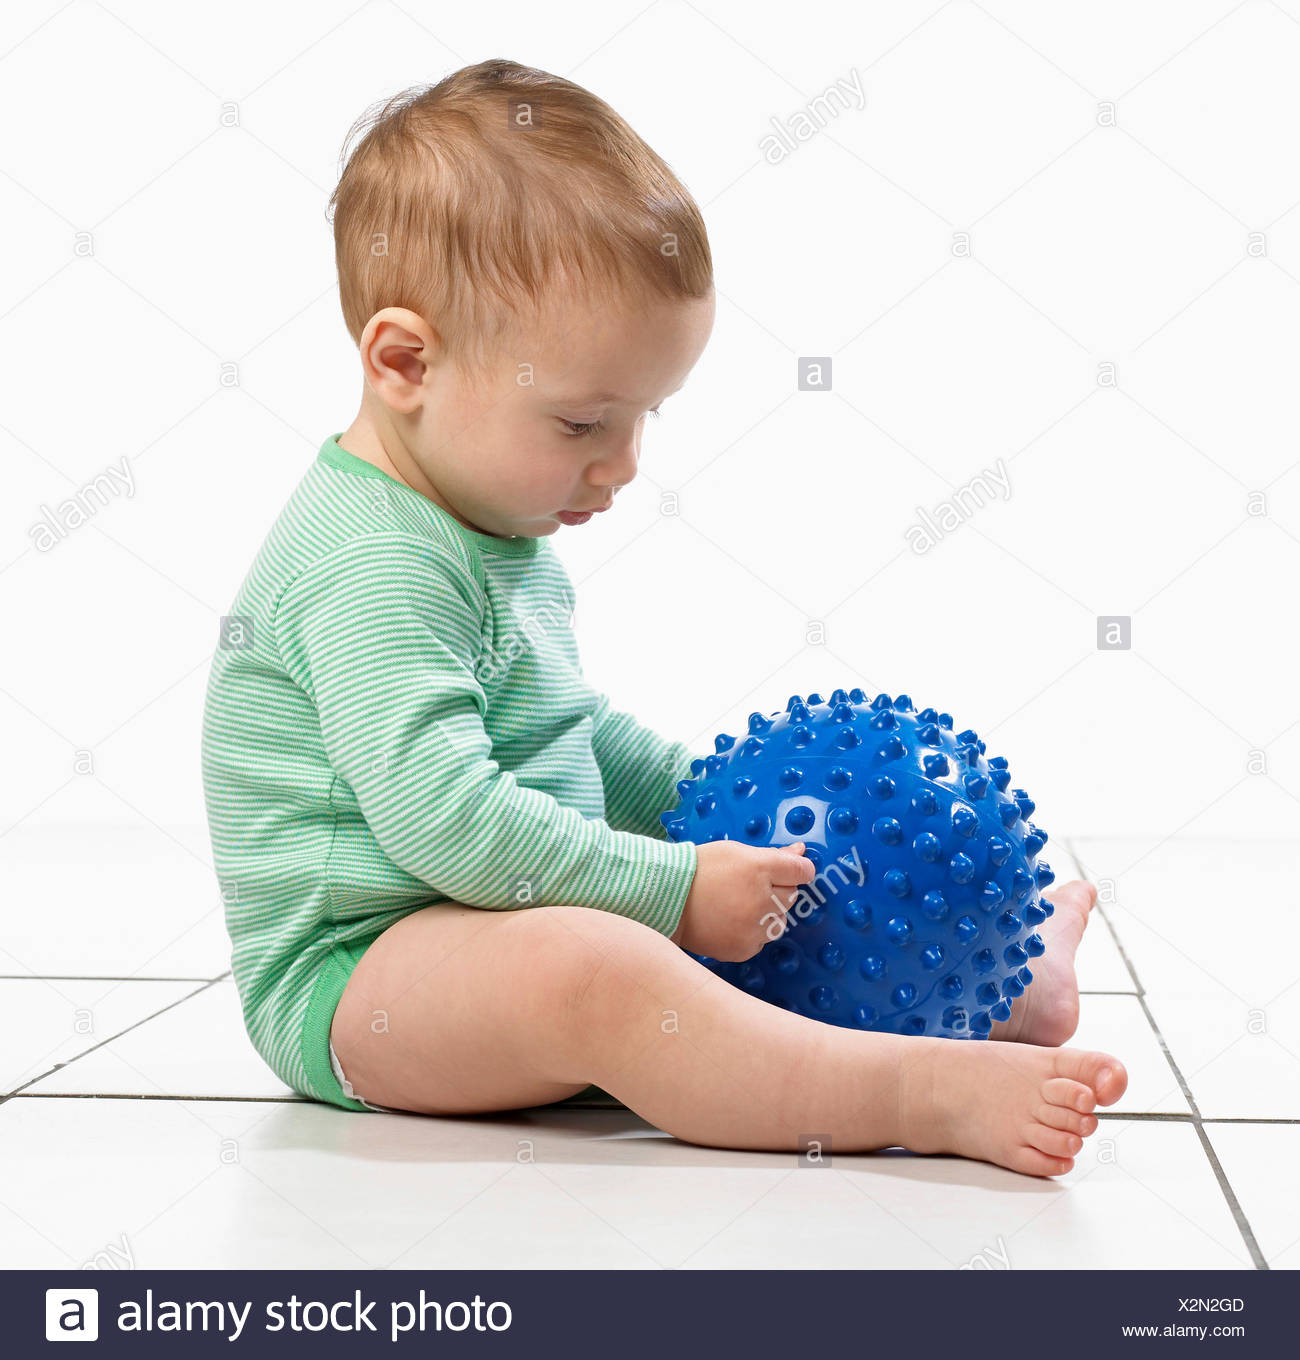 Baby boy (12.5 months) sitting holding a bumpy ball toy - Stock Image